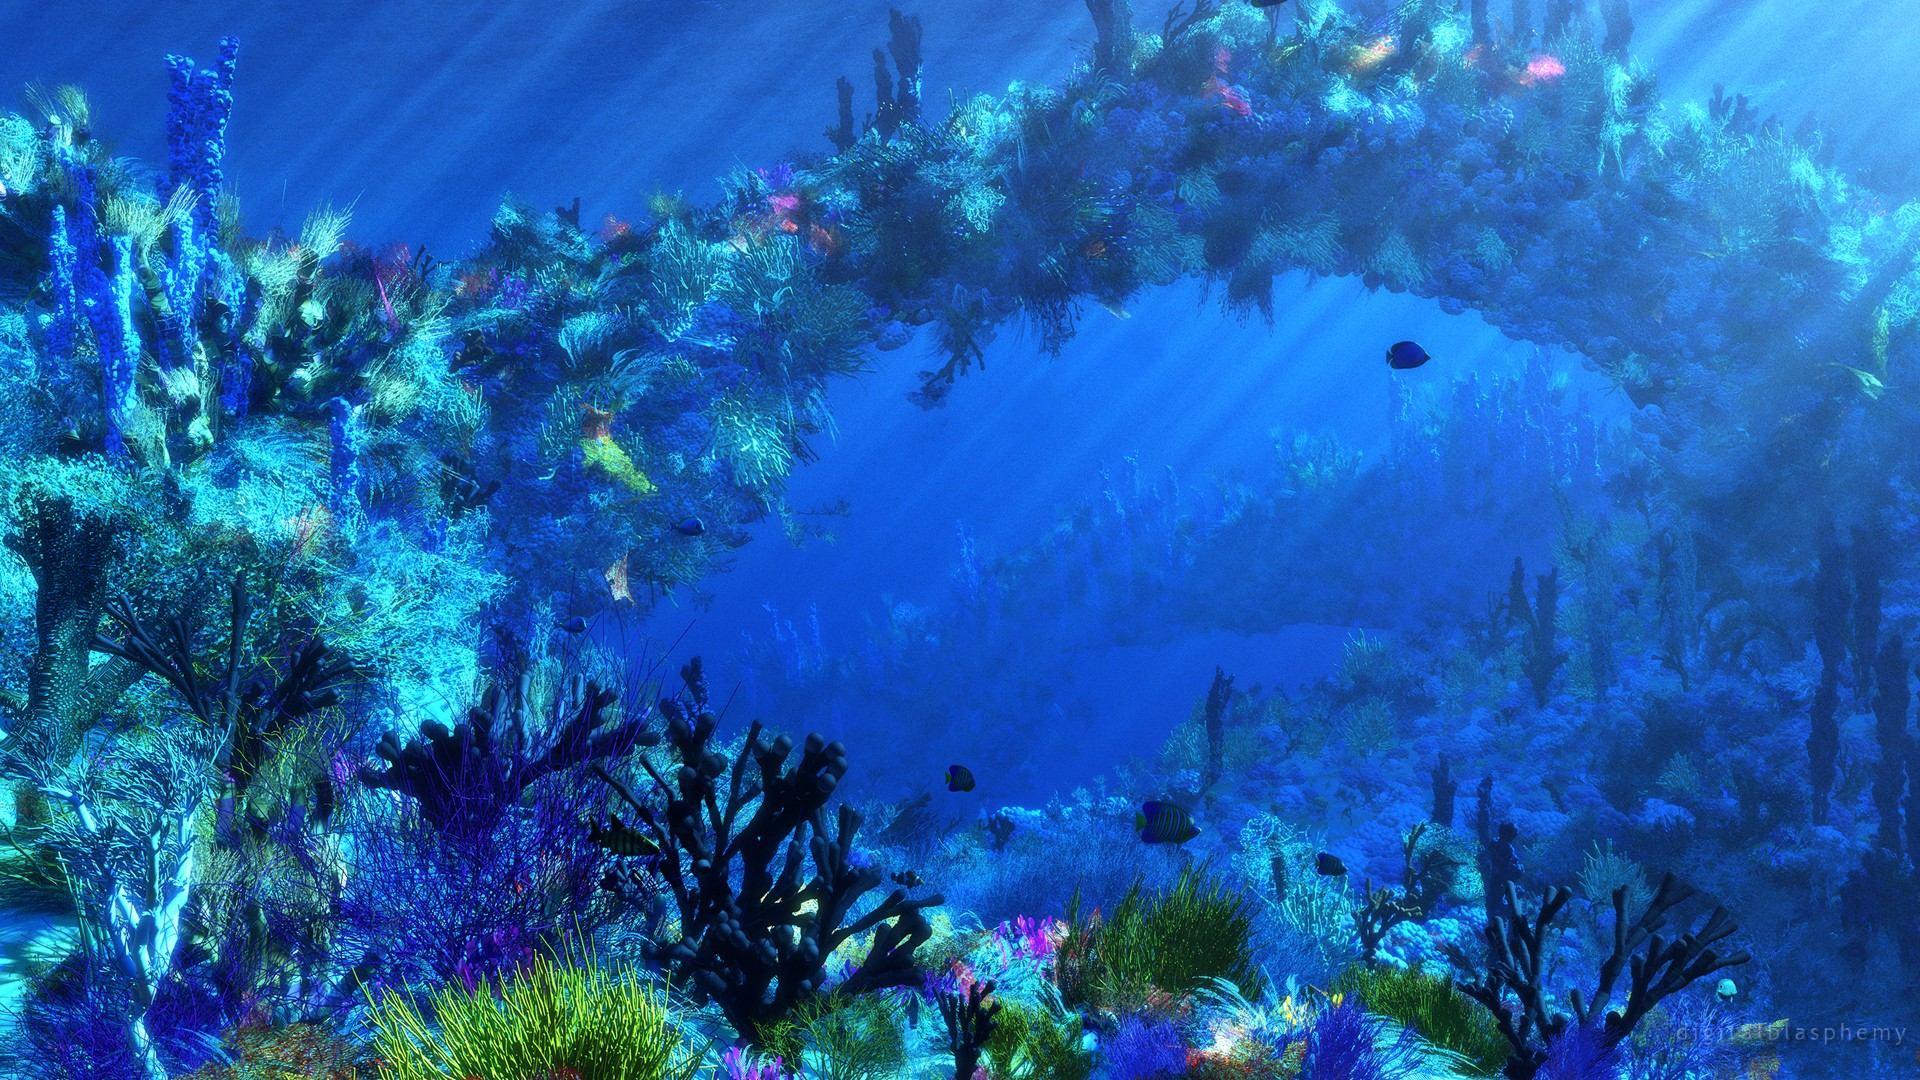 46 underwater ocean wallpaper on wallpapersafari - Underwater desktop background ...